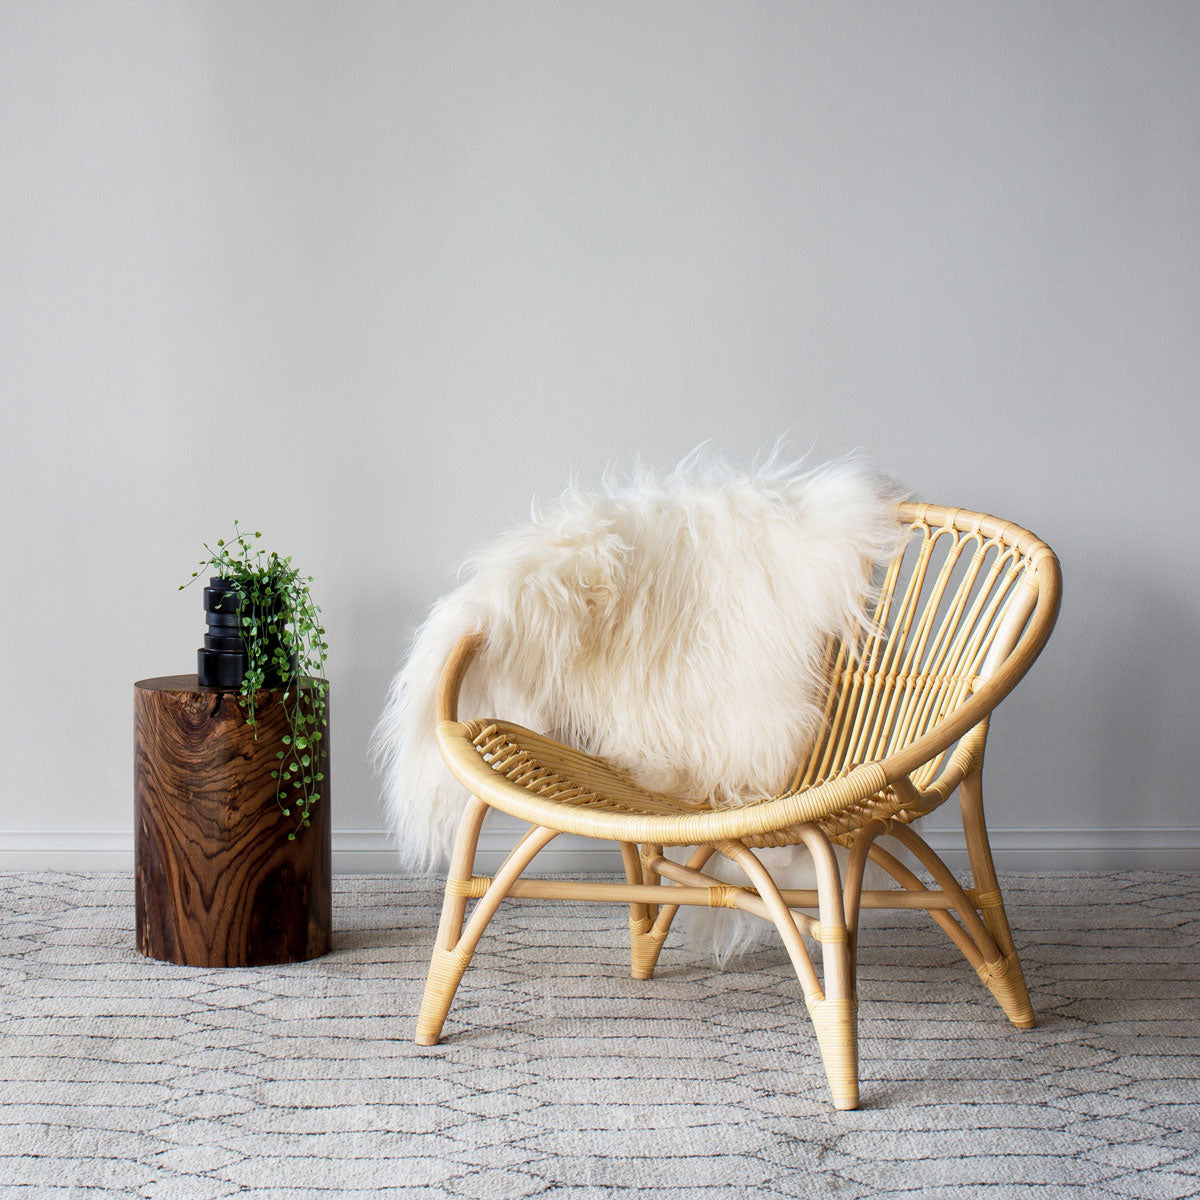 buy Easy chair in Natural Rattan by Feelgood Designs - Designed by Yuzuru Yamakawa online